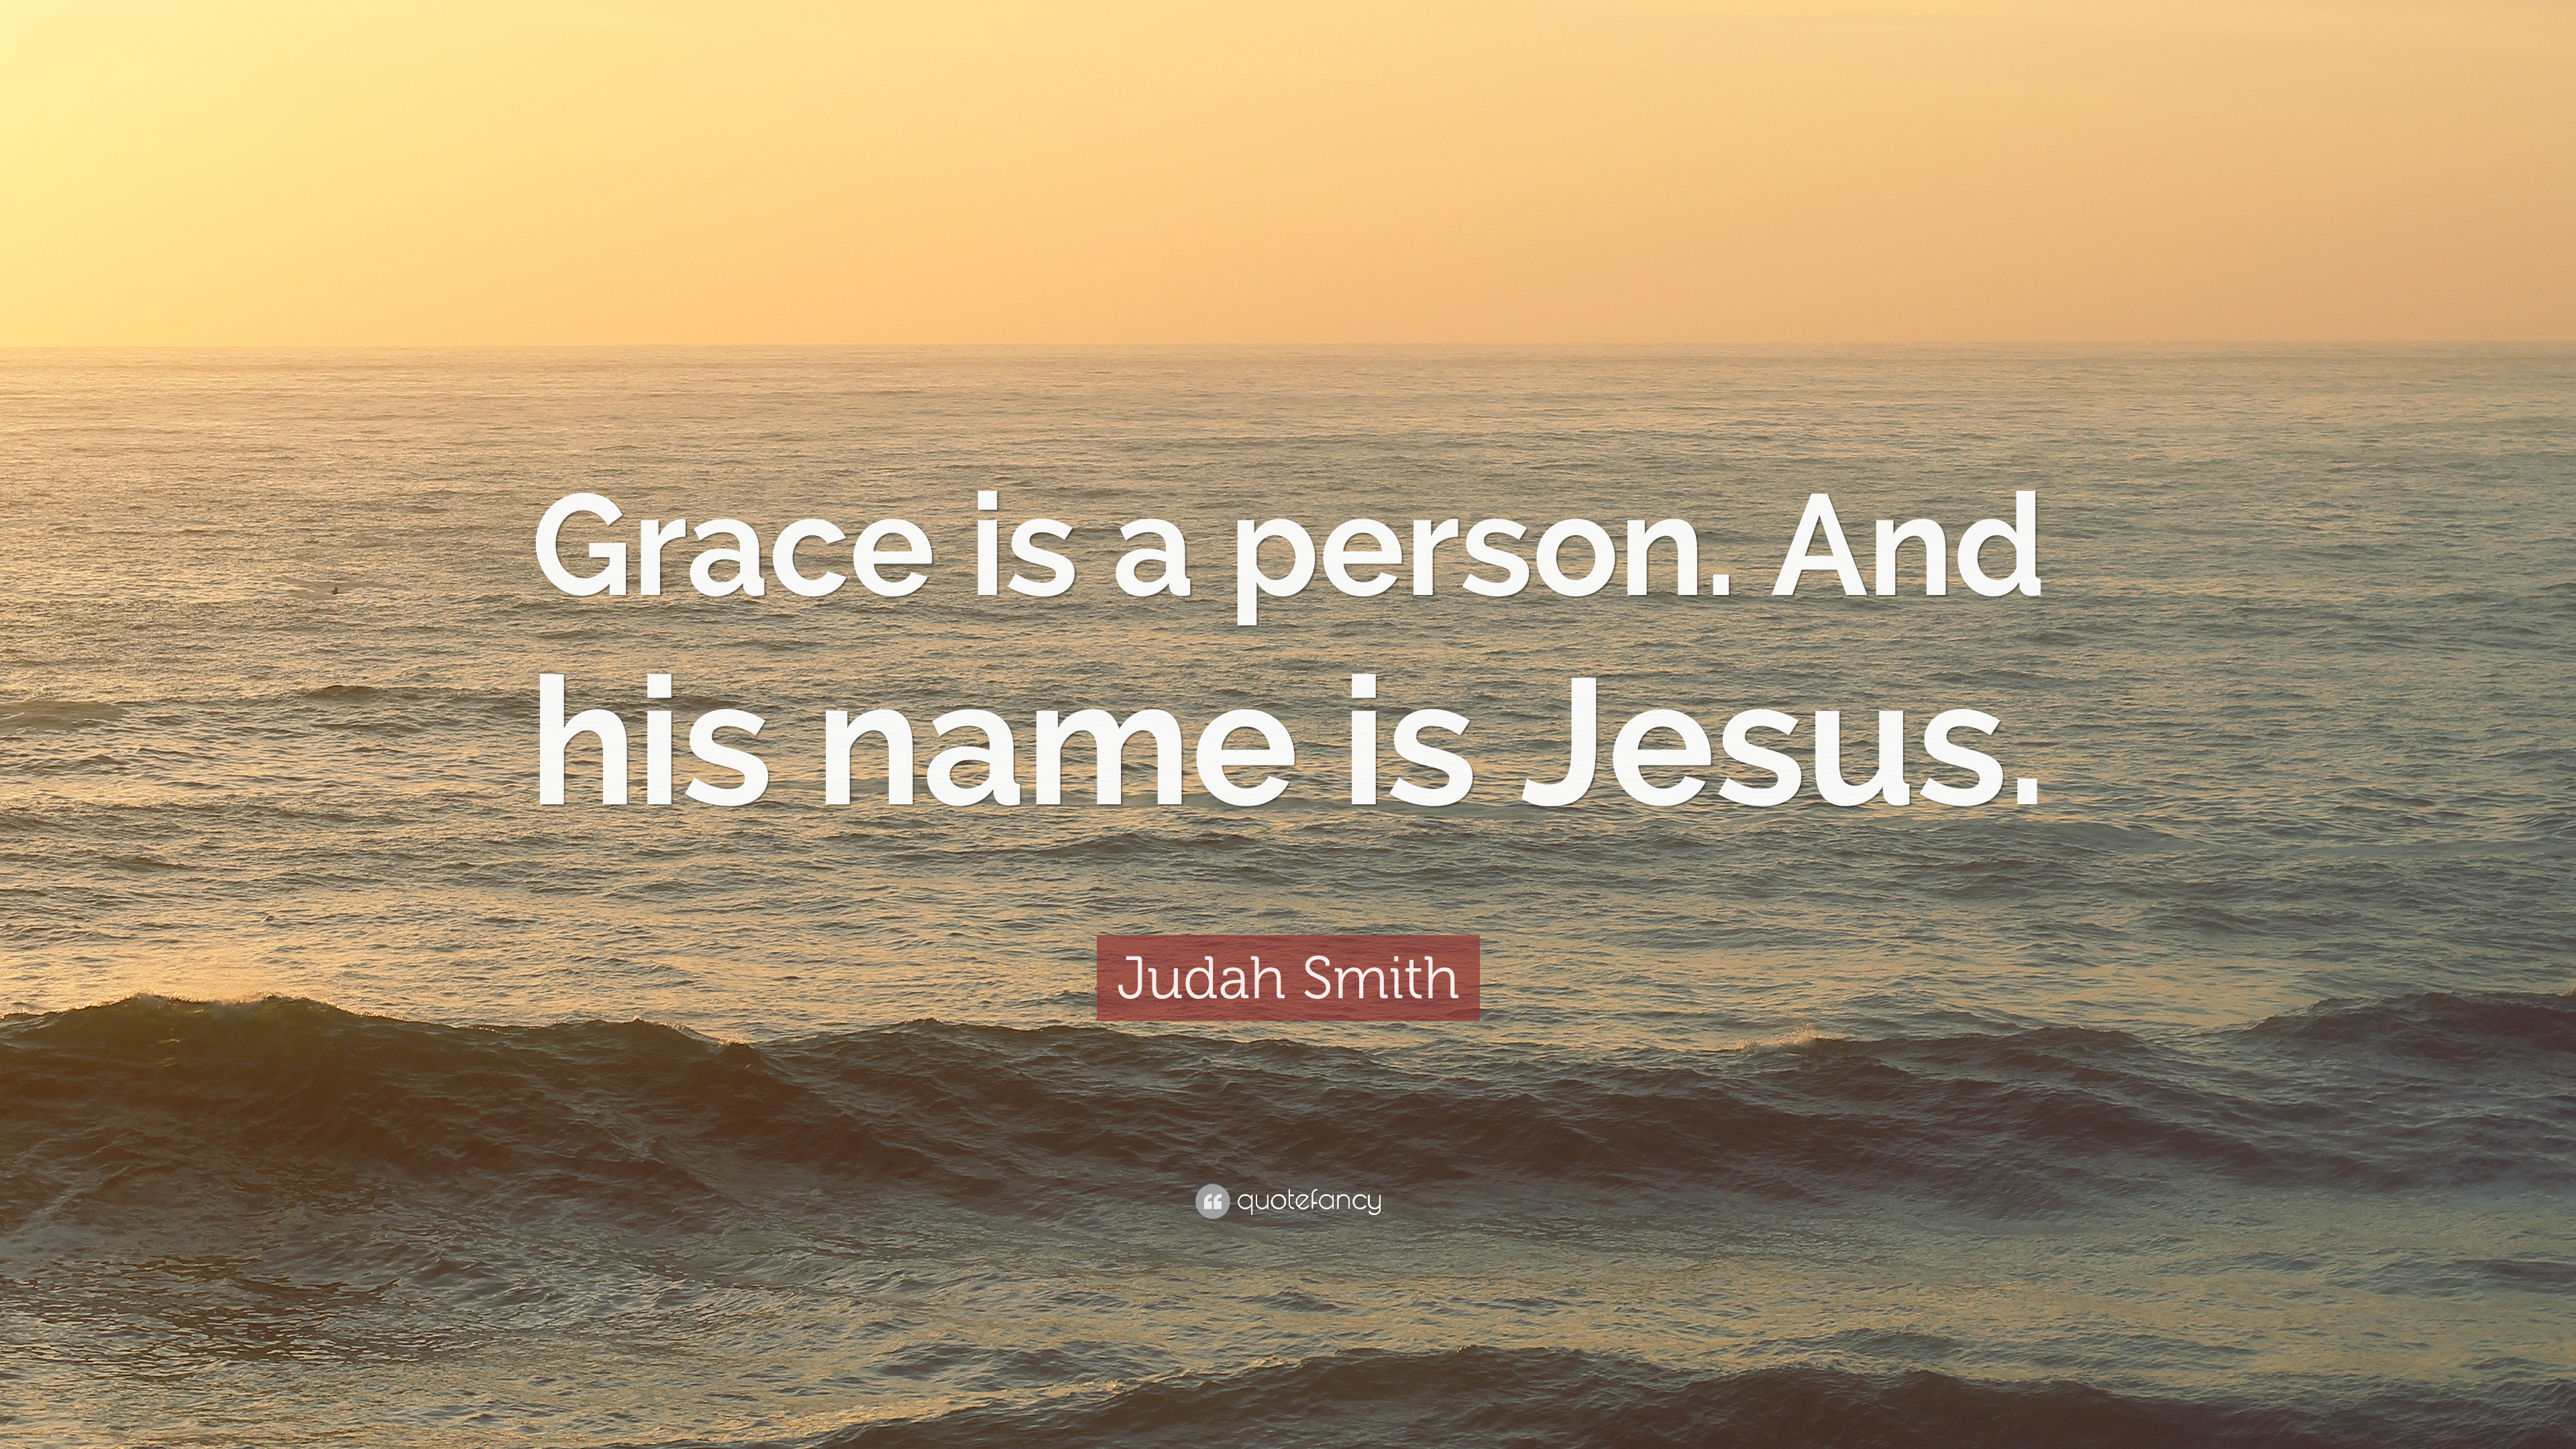 """Judah Smith Quote: """"Grace is a person  And his name is Jesus"""